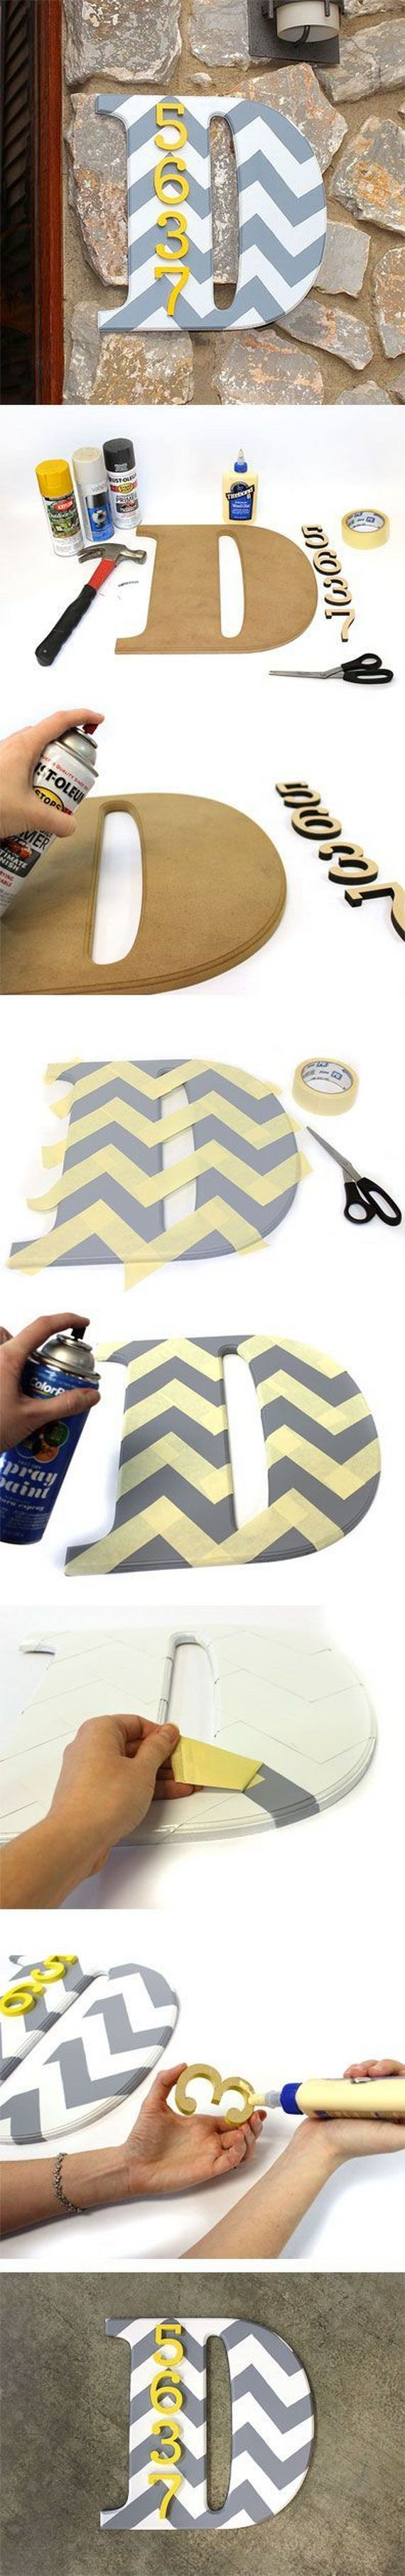 01-diy-letter-ideas-tutorials